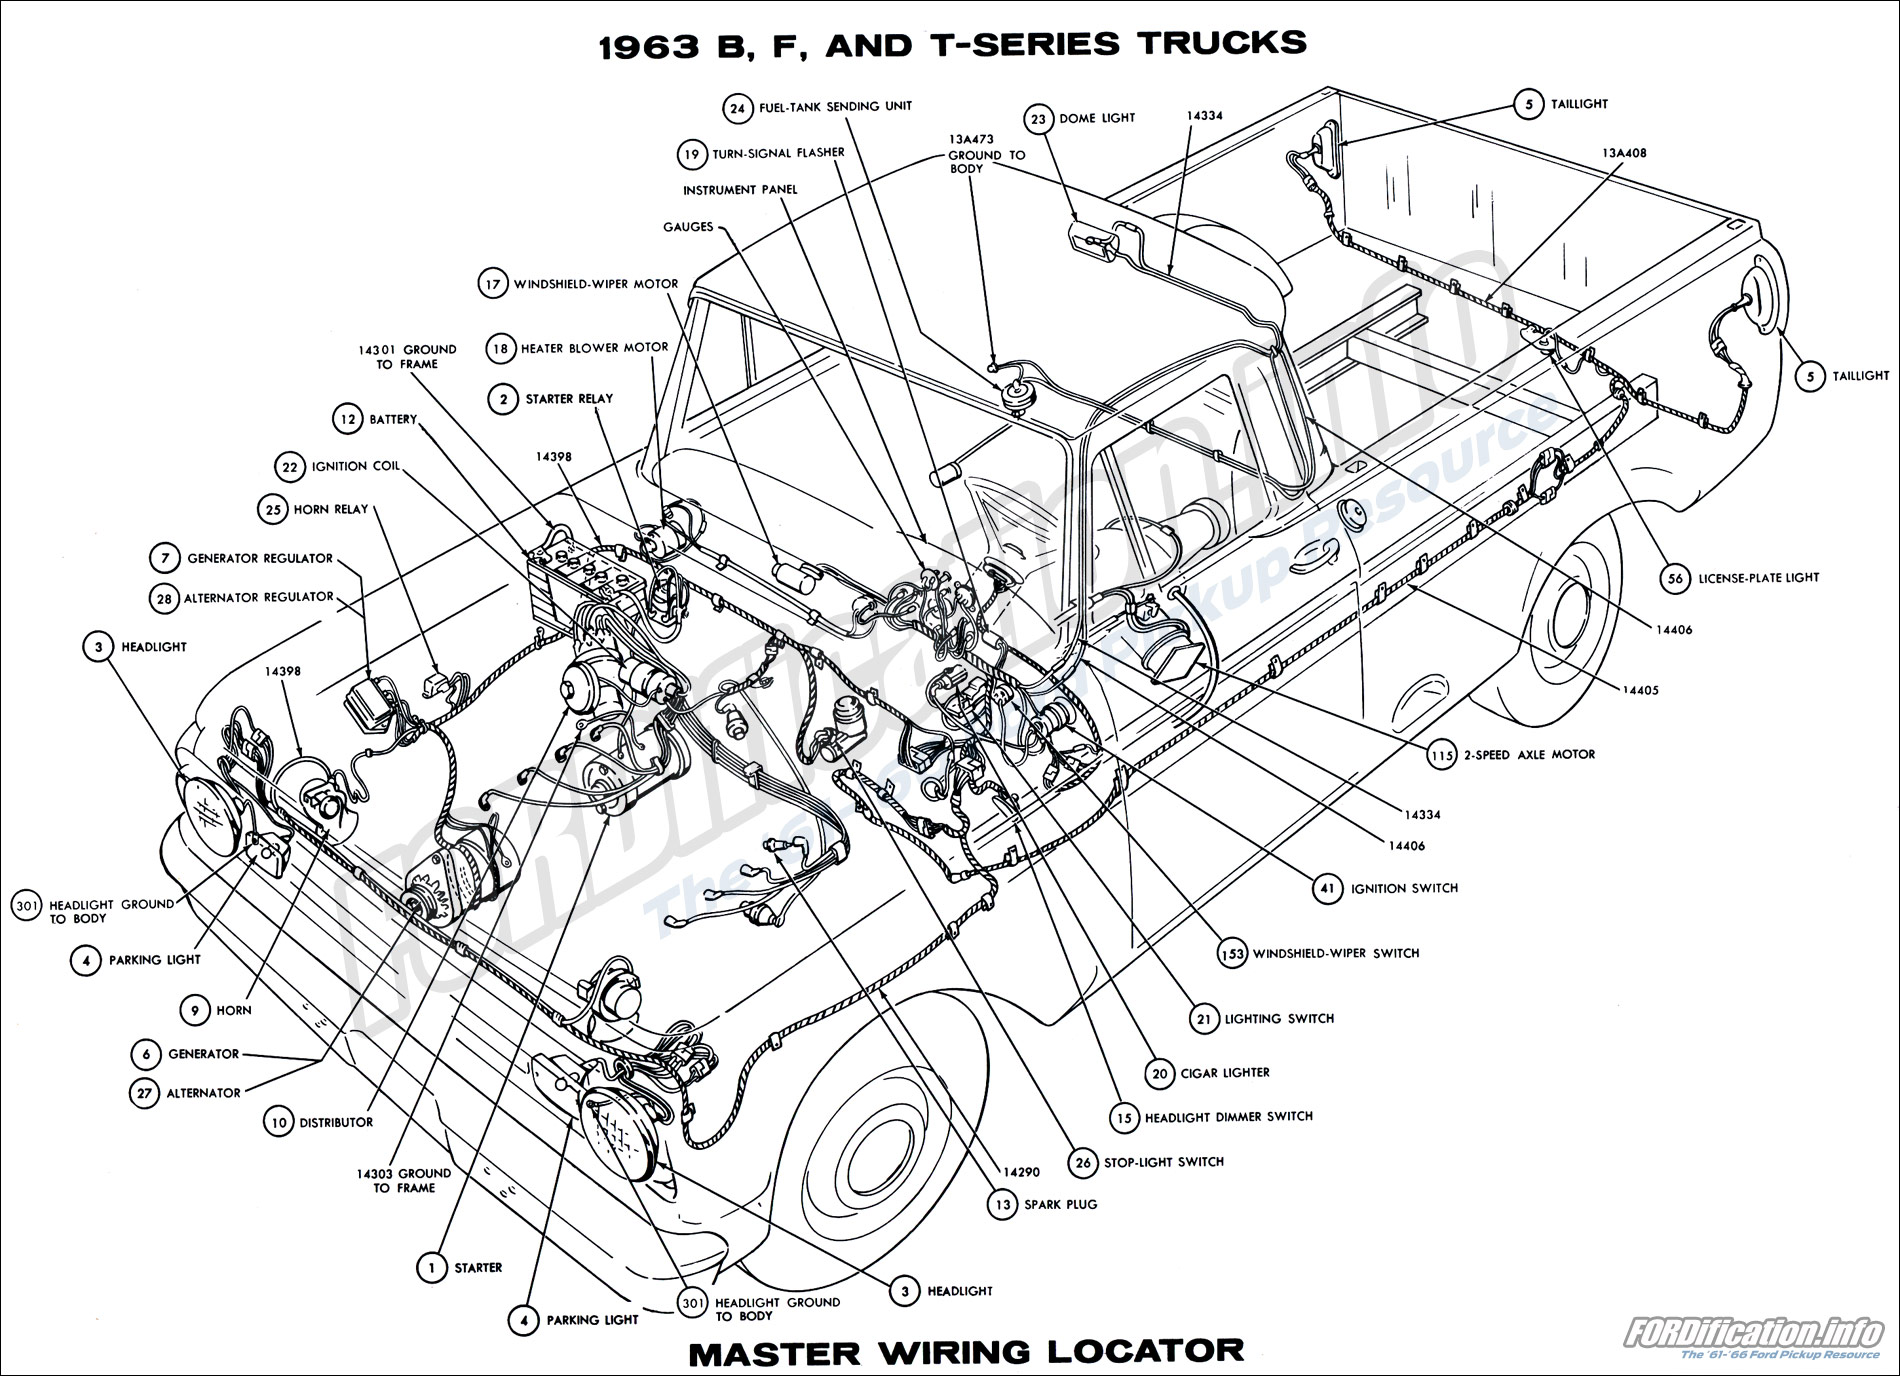 1968 Ford Fairlane Wiring Diagram Library Torino 1962 Truck Online Schematics Rh Delvato Co 1963 1964